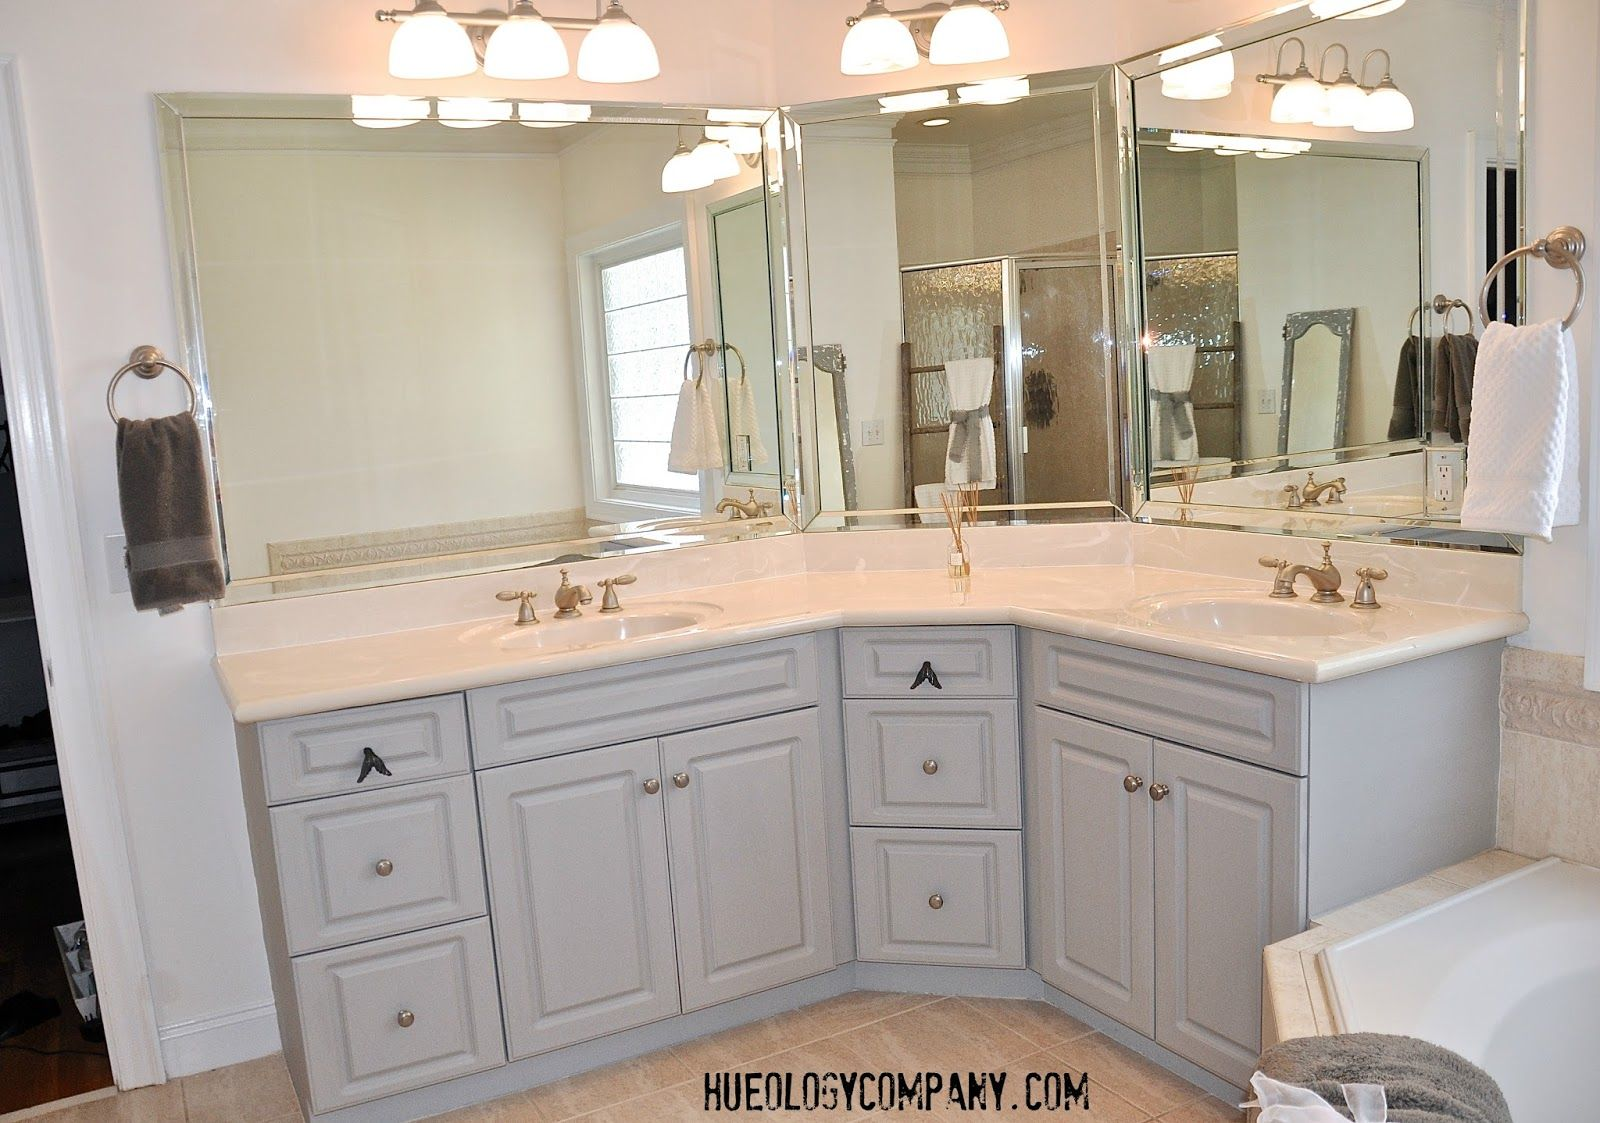 Bathroom Cabinets painted with Paris Grey Chalk paint and Artisan Enhancements Clear Top Coat